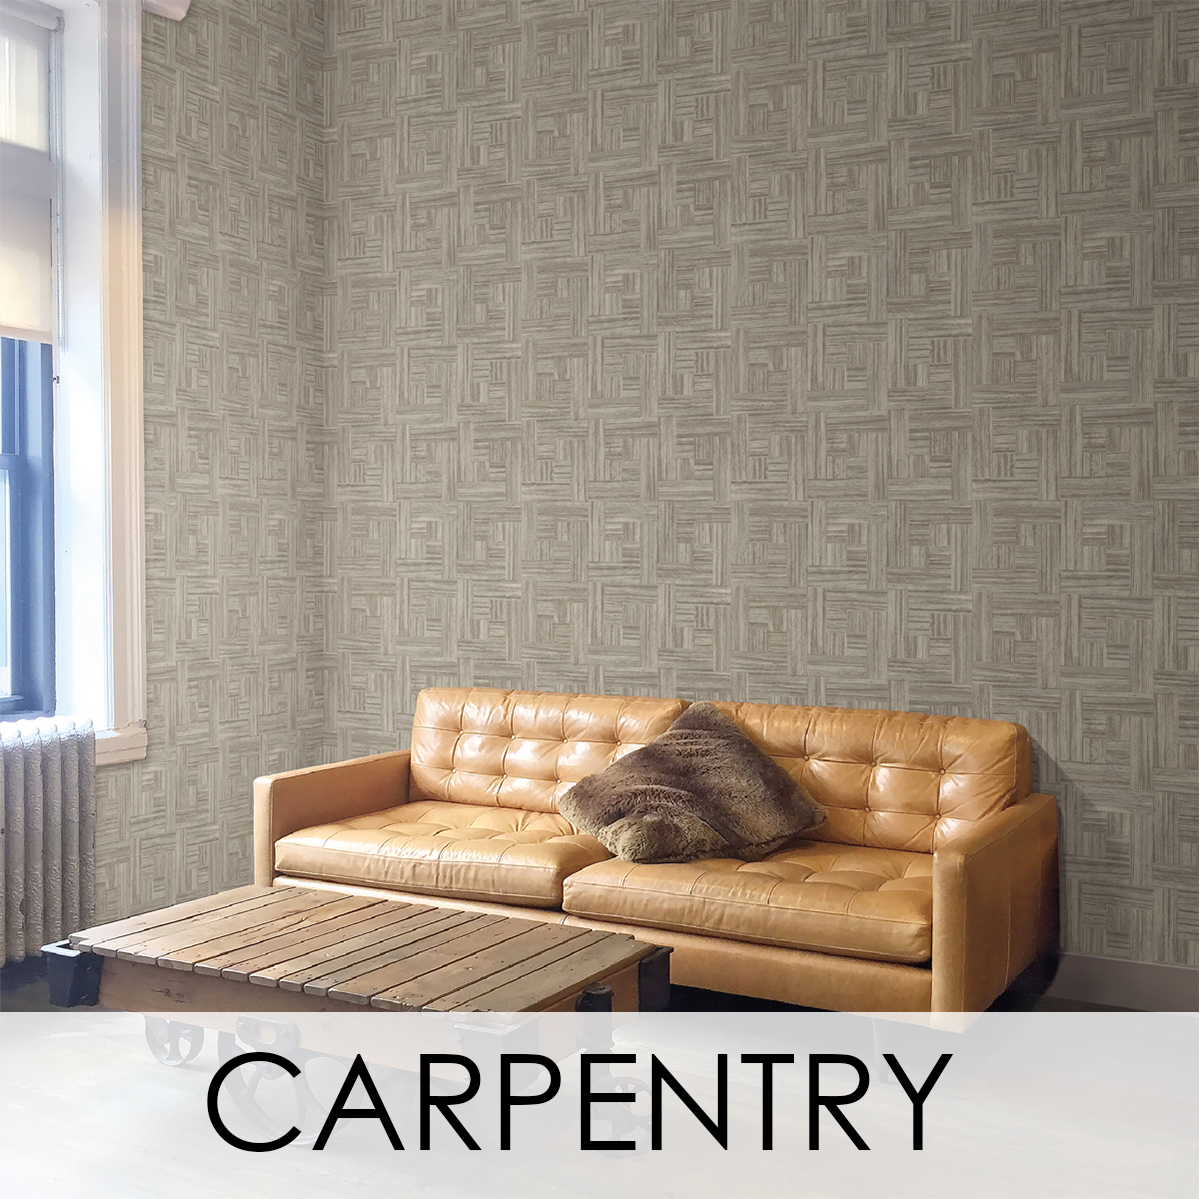 Carpenty Wallcovering from LEVEY